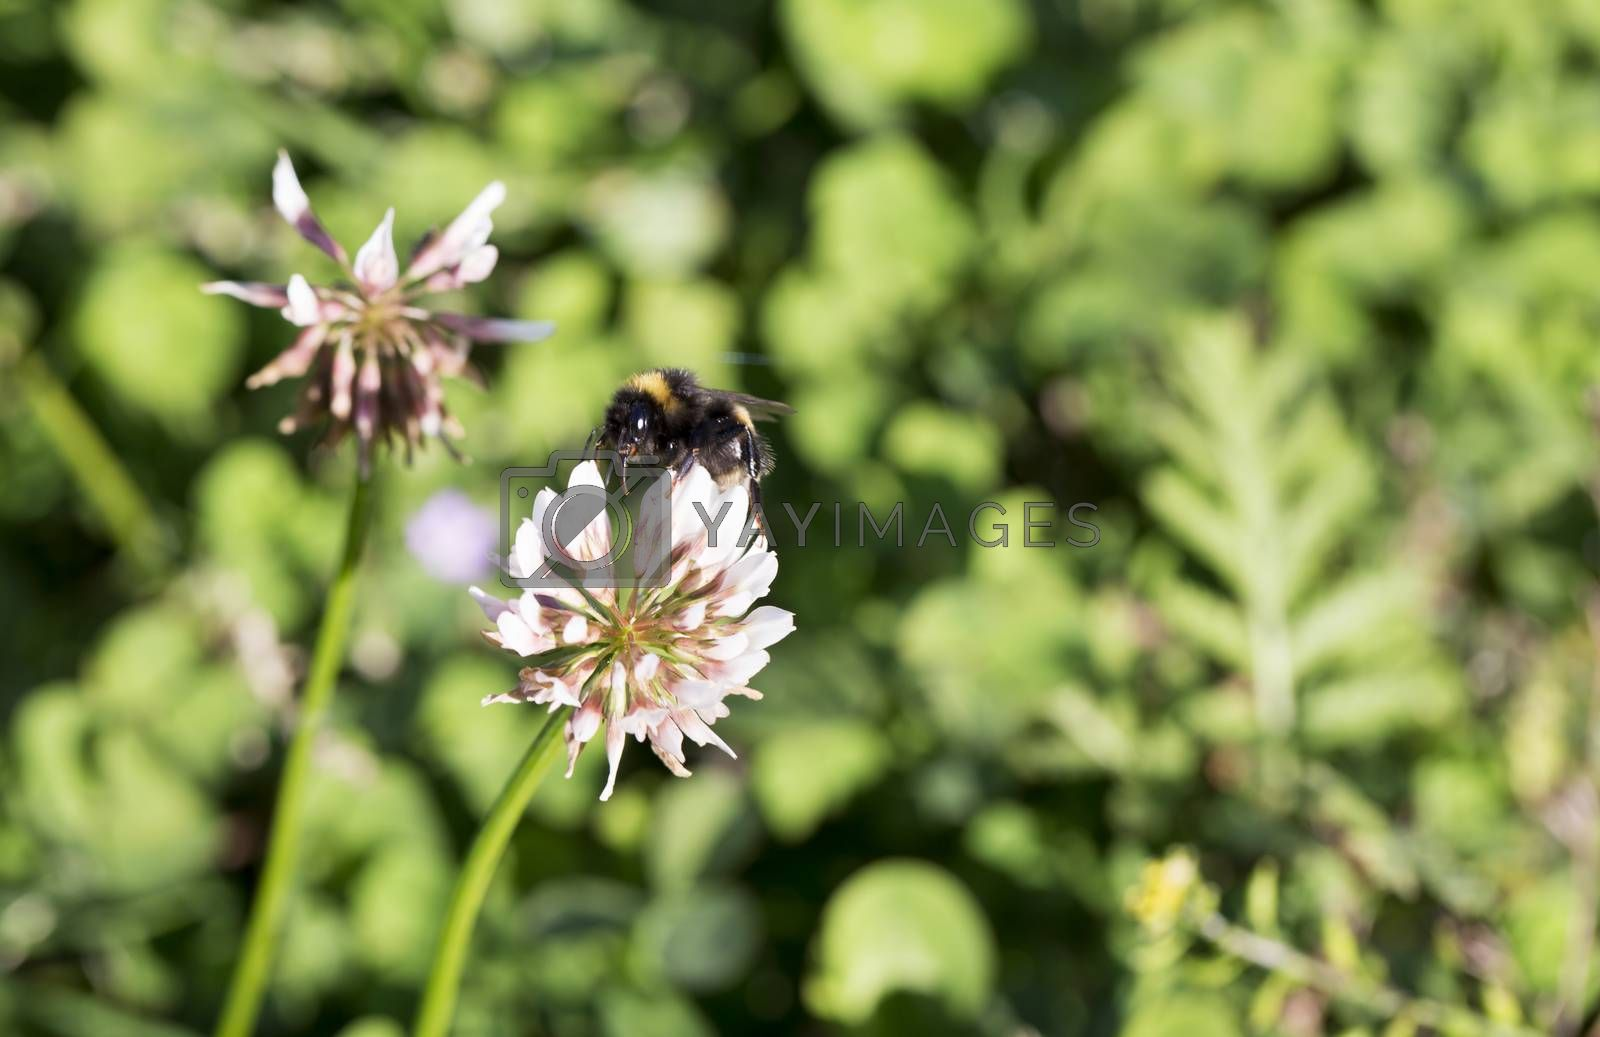 Bumblebee Gathering Nectar from Clover